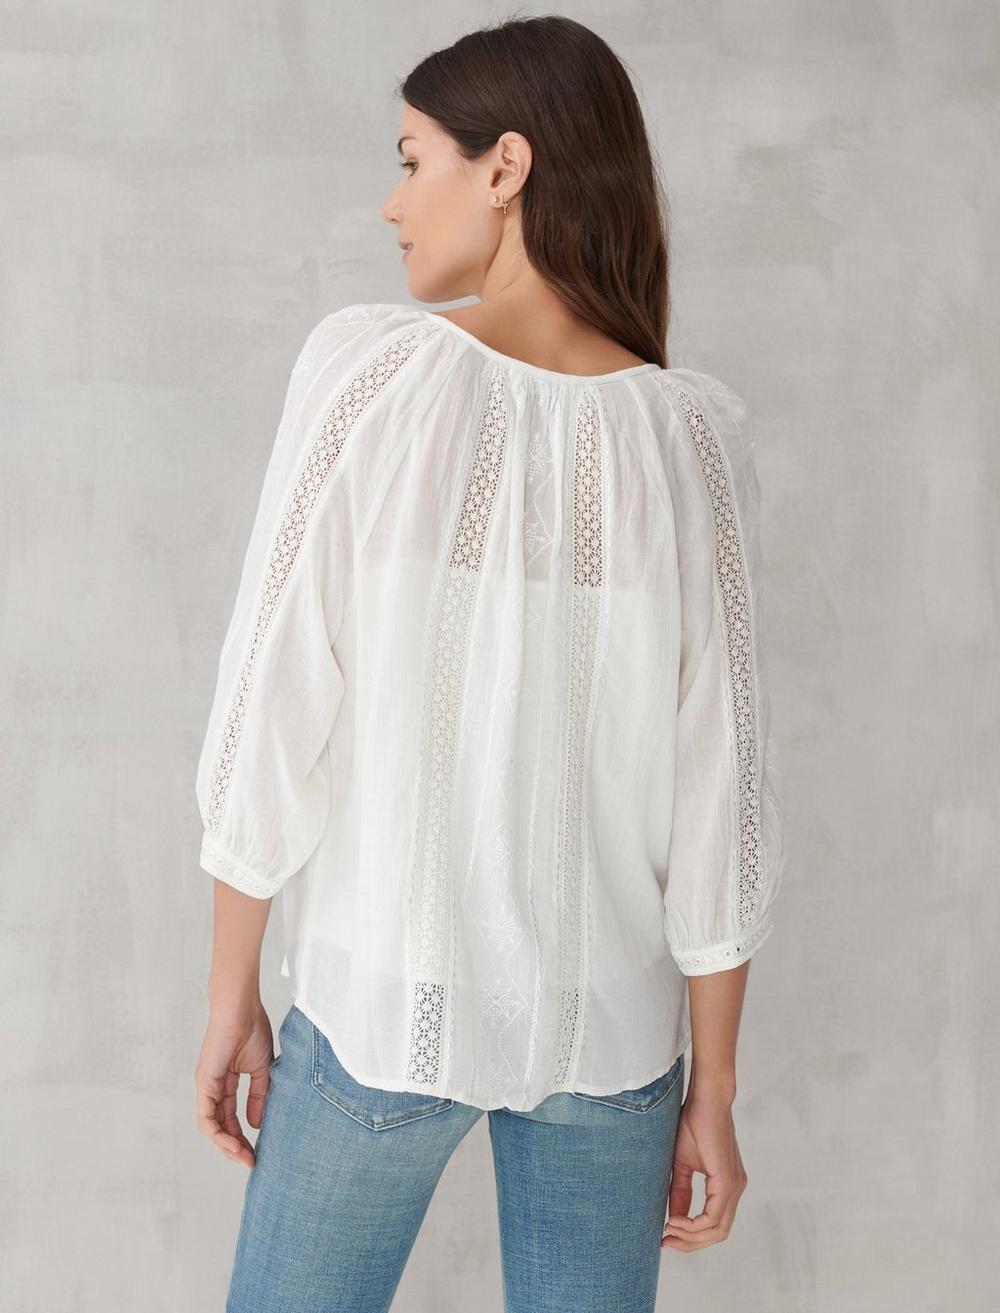 LACE INSET EMBROIDERED BUTTON TOP, image 4